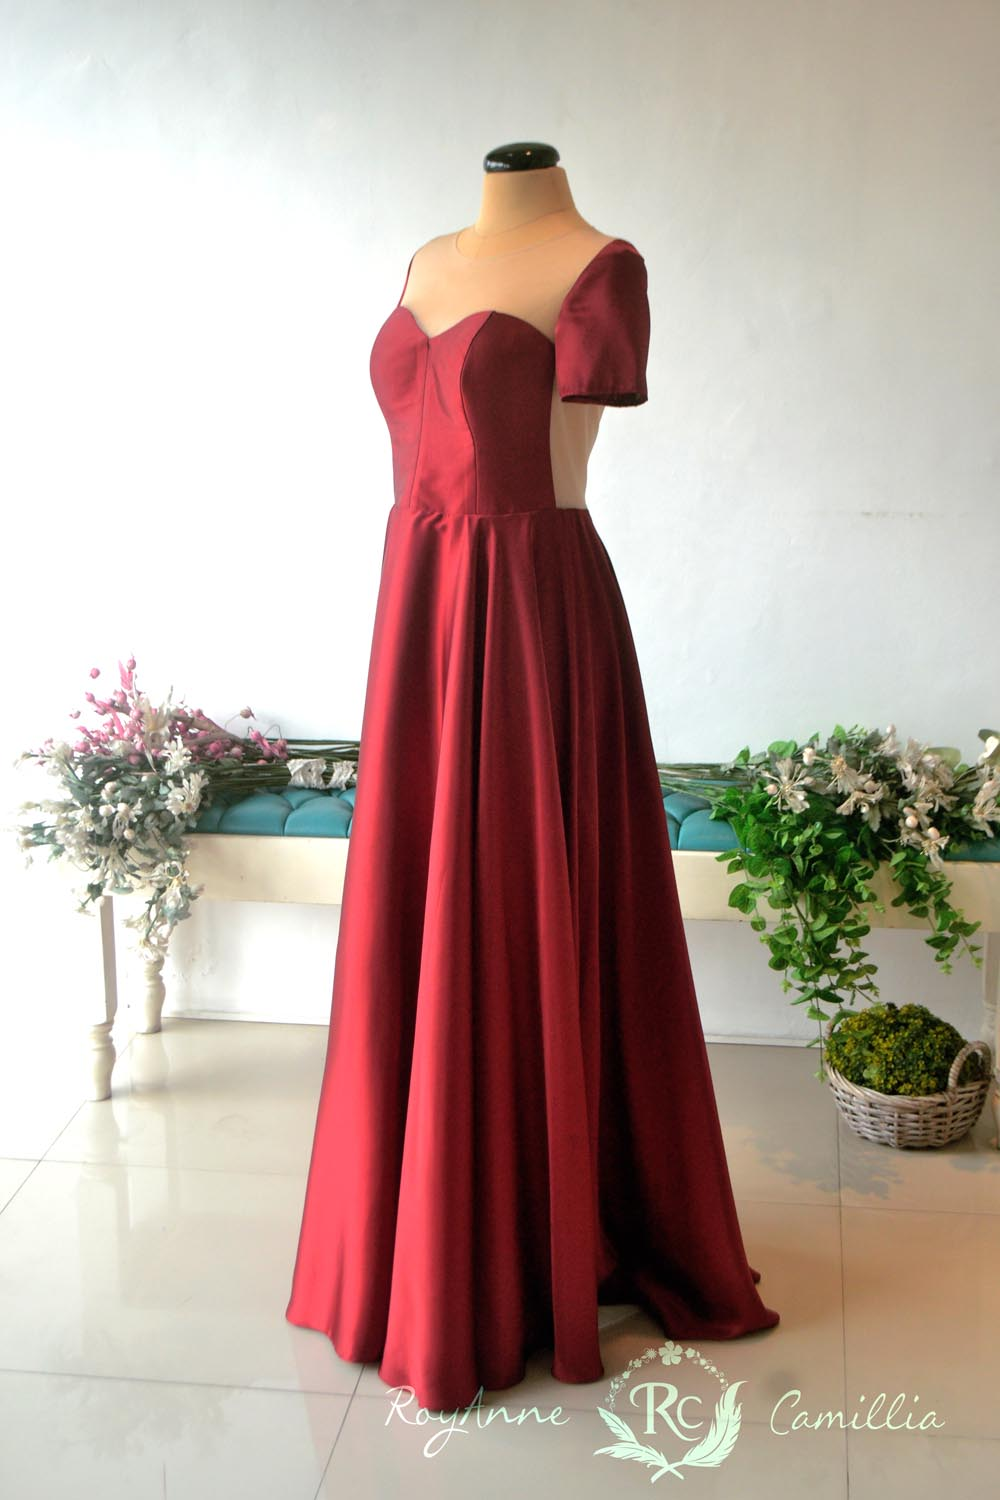 Bridesmaid gown rental philippines discount wedding dresses for Honolulu wedding dress rental